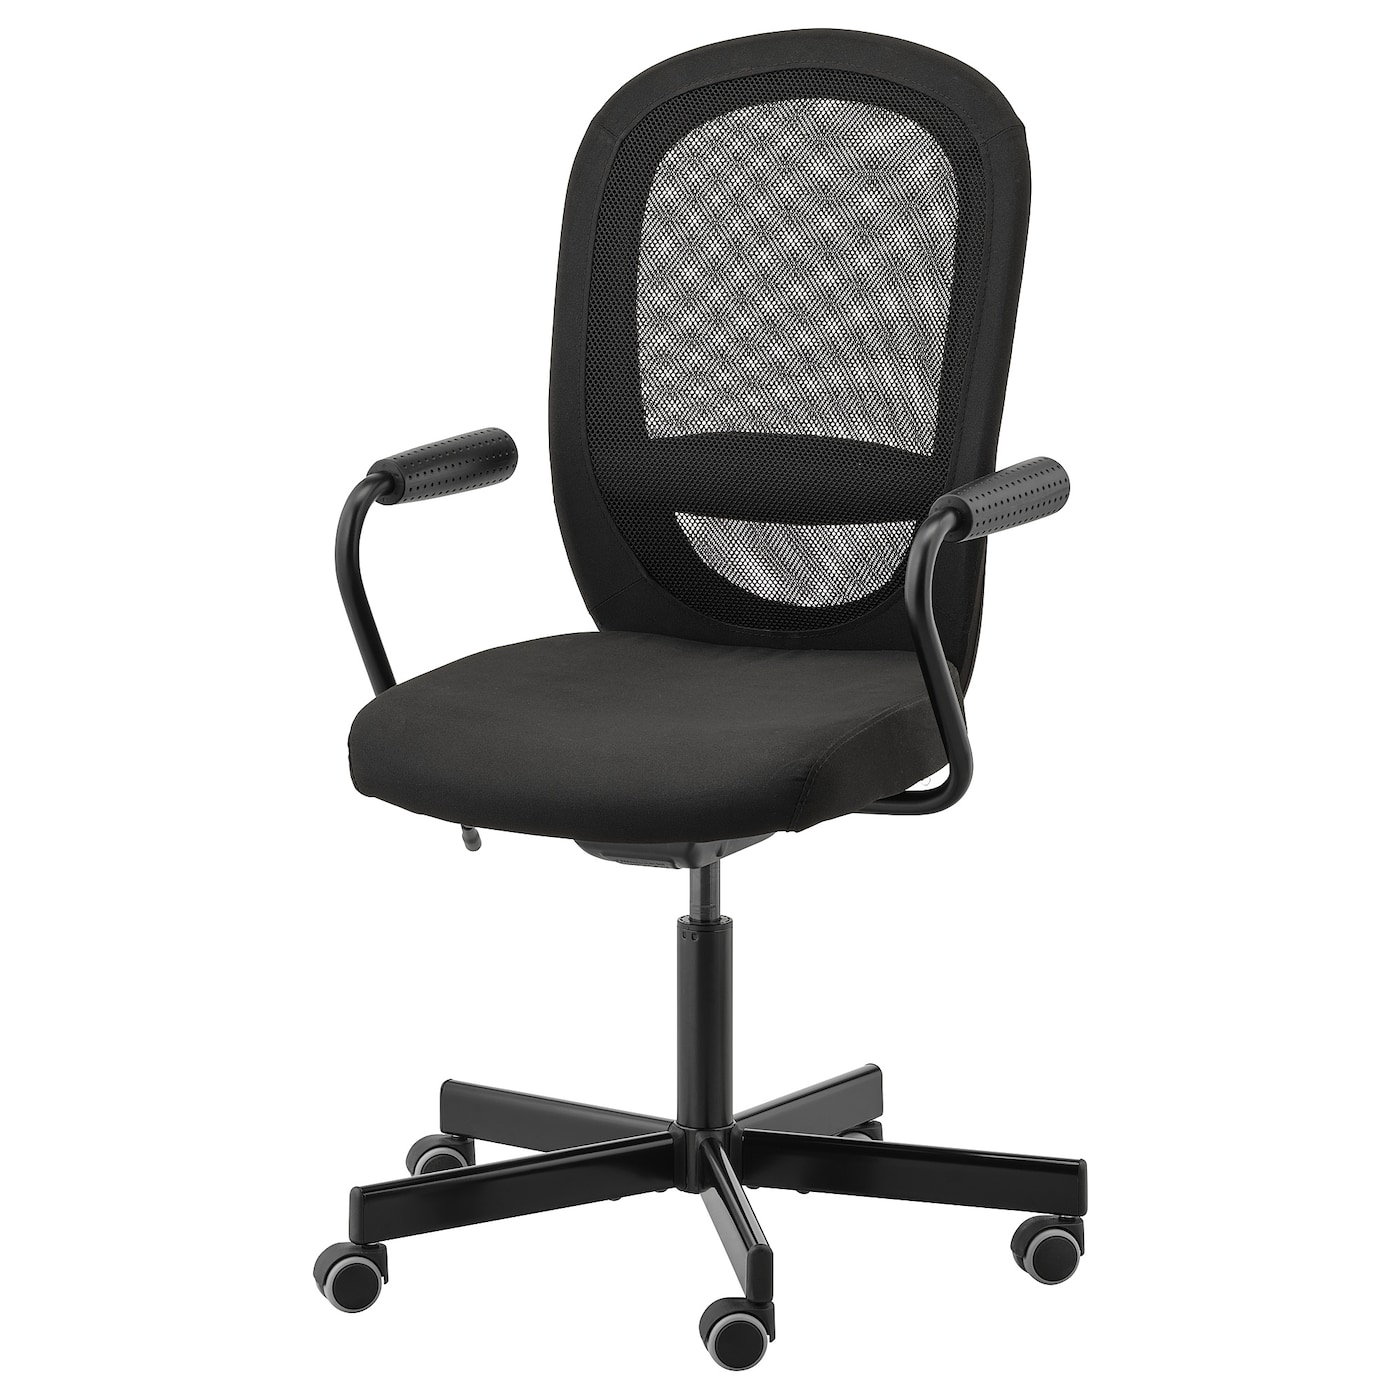 FLINTAN / NOMINELL Office chair with armrests - black